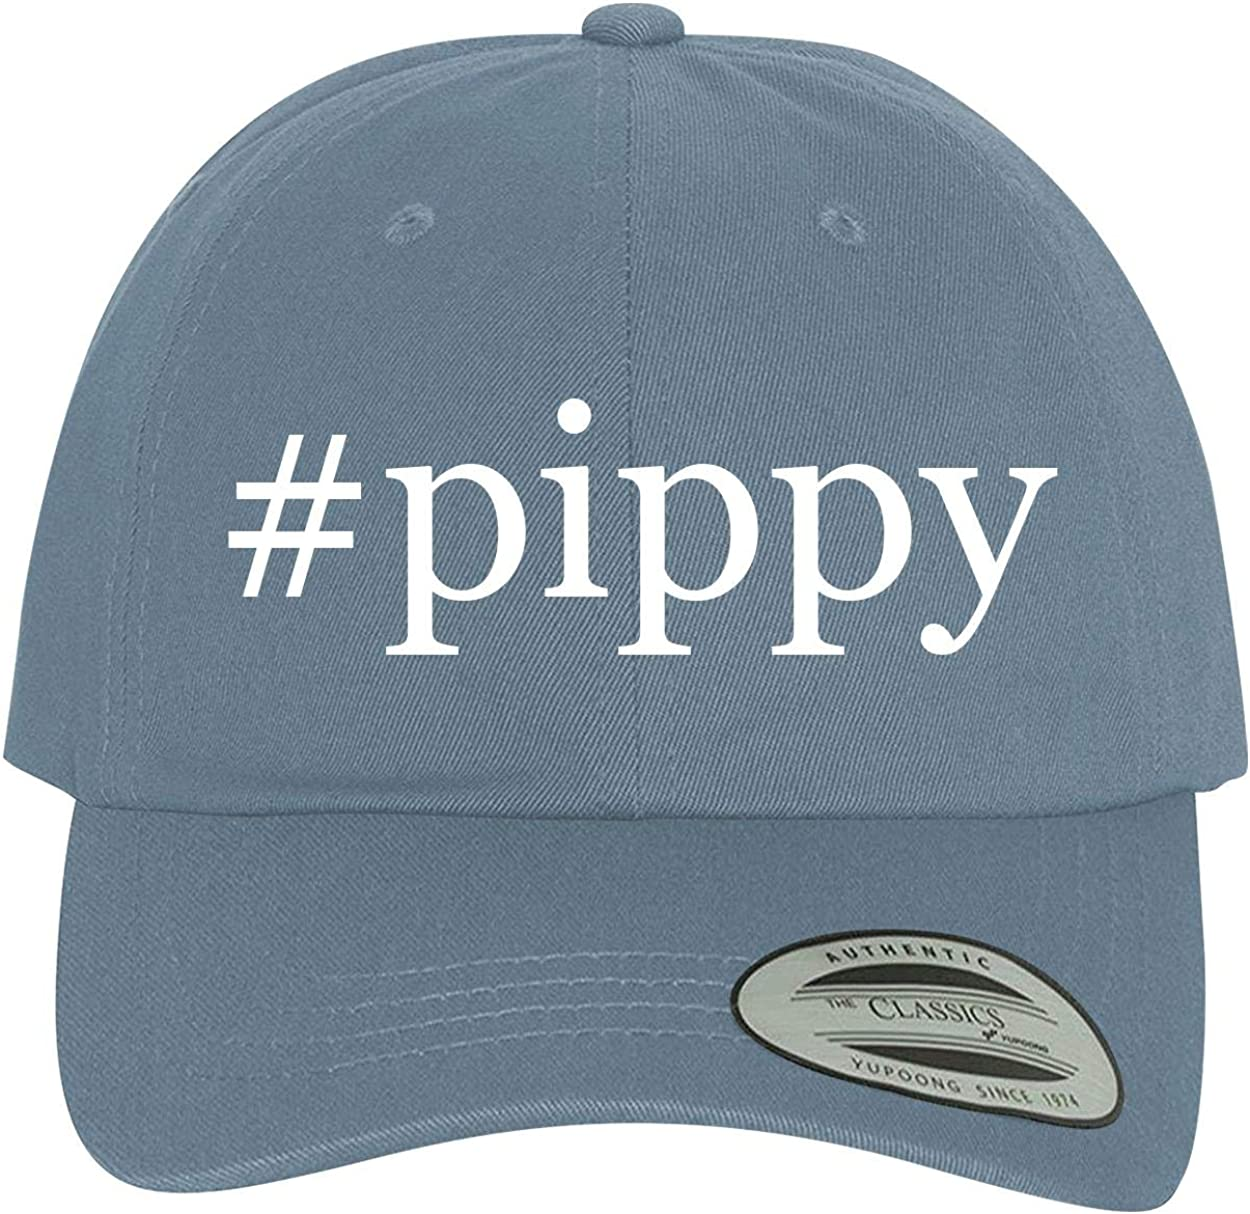 Comfortable Dad Hat Baseball Cap BH Cool Designs #Pippy